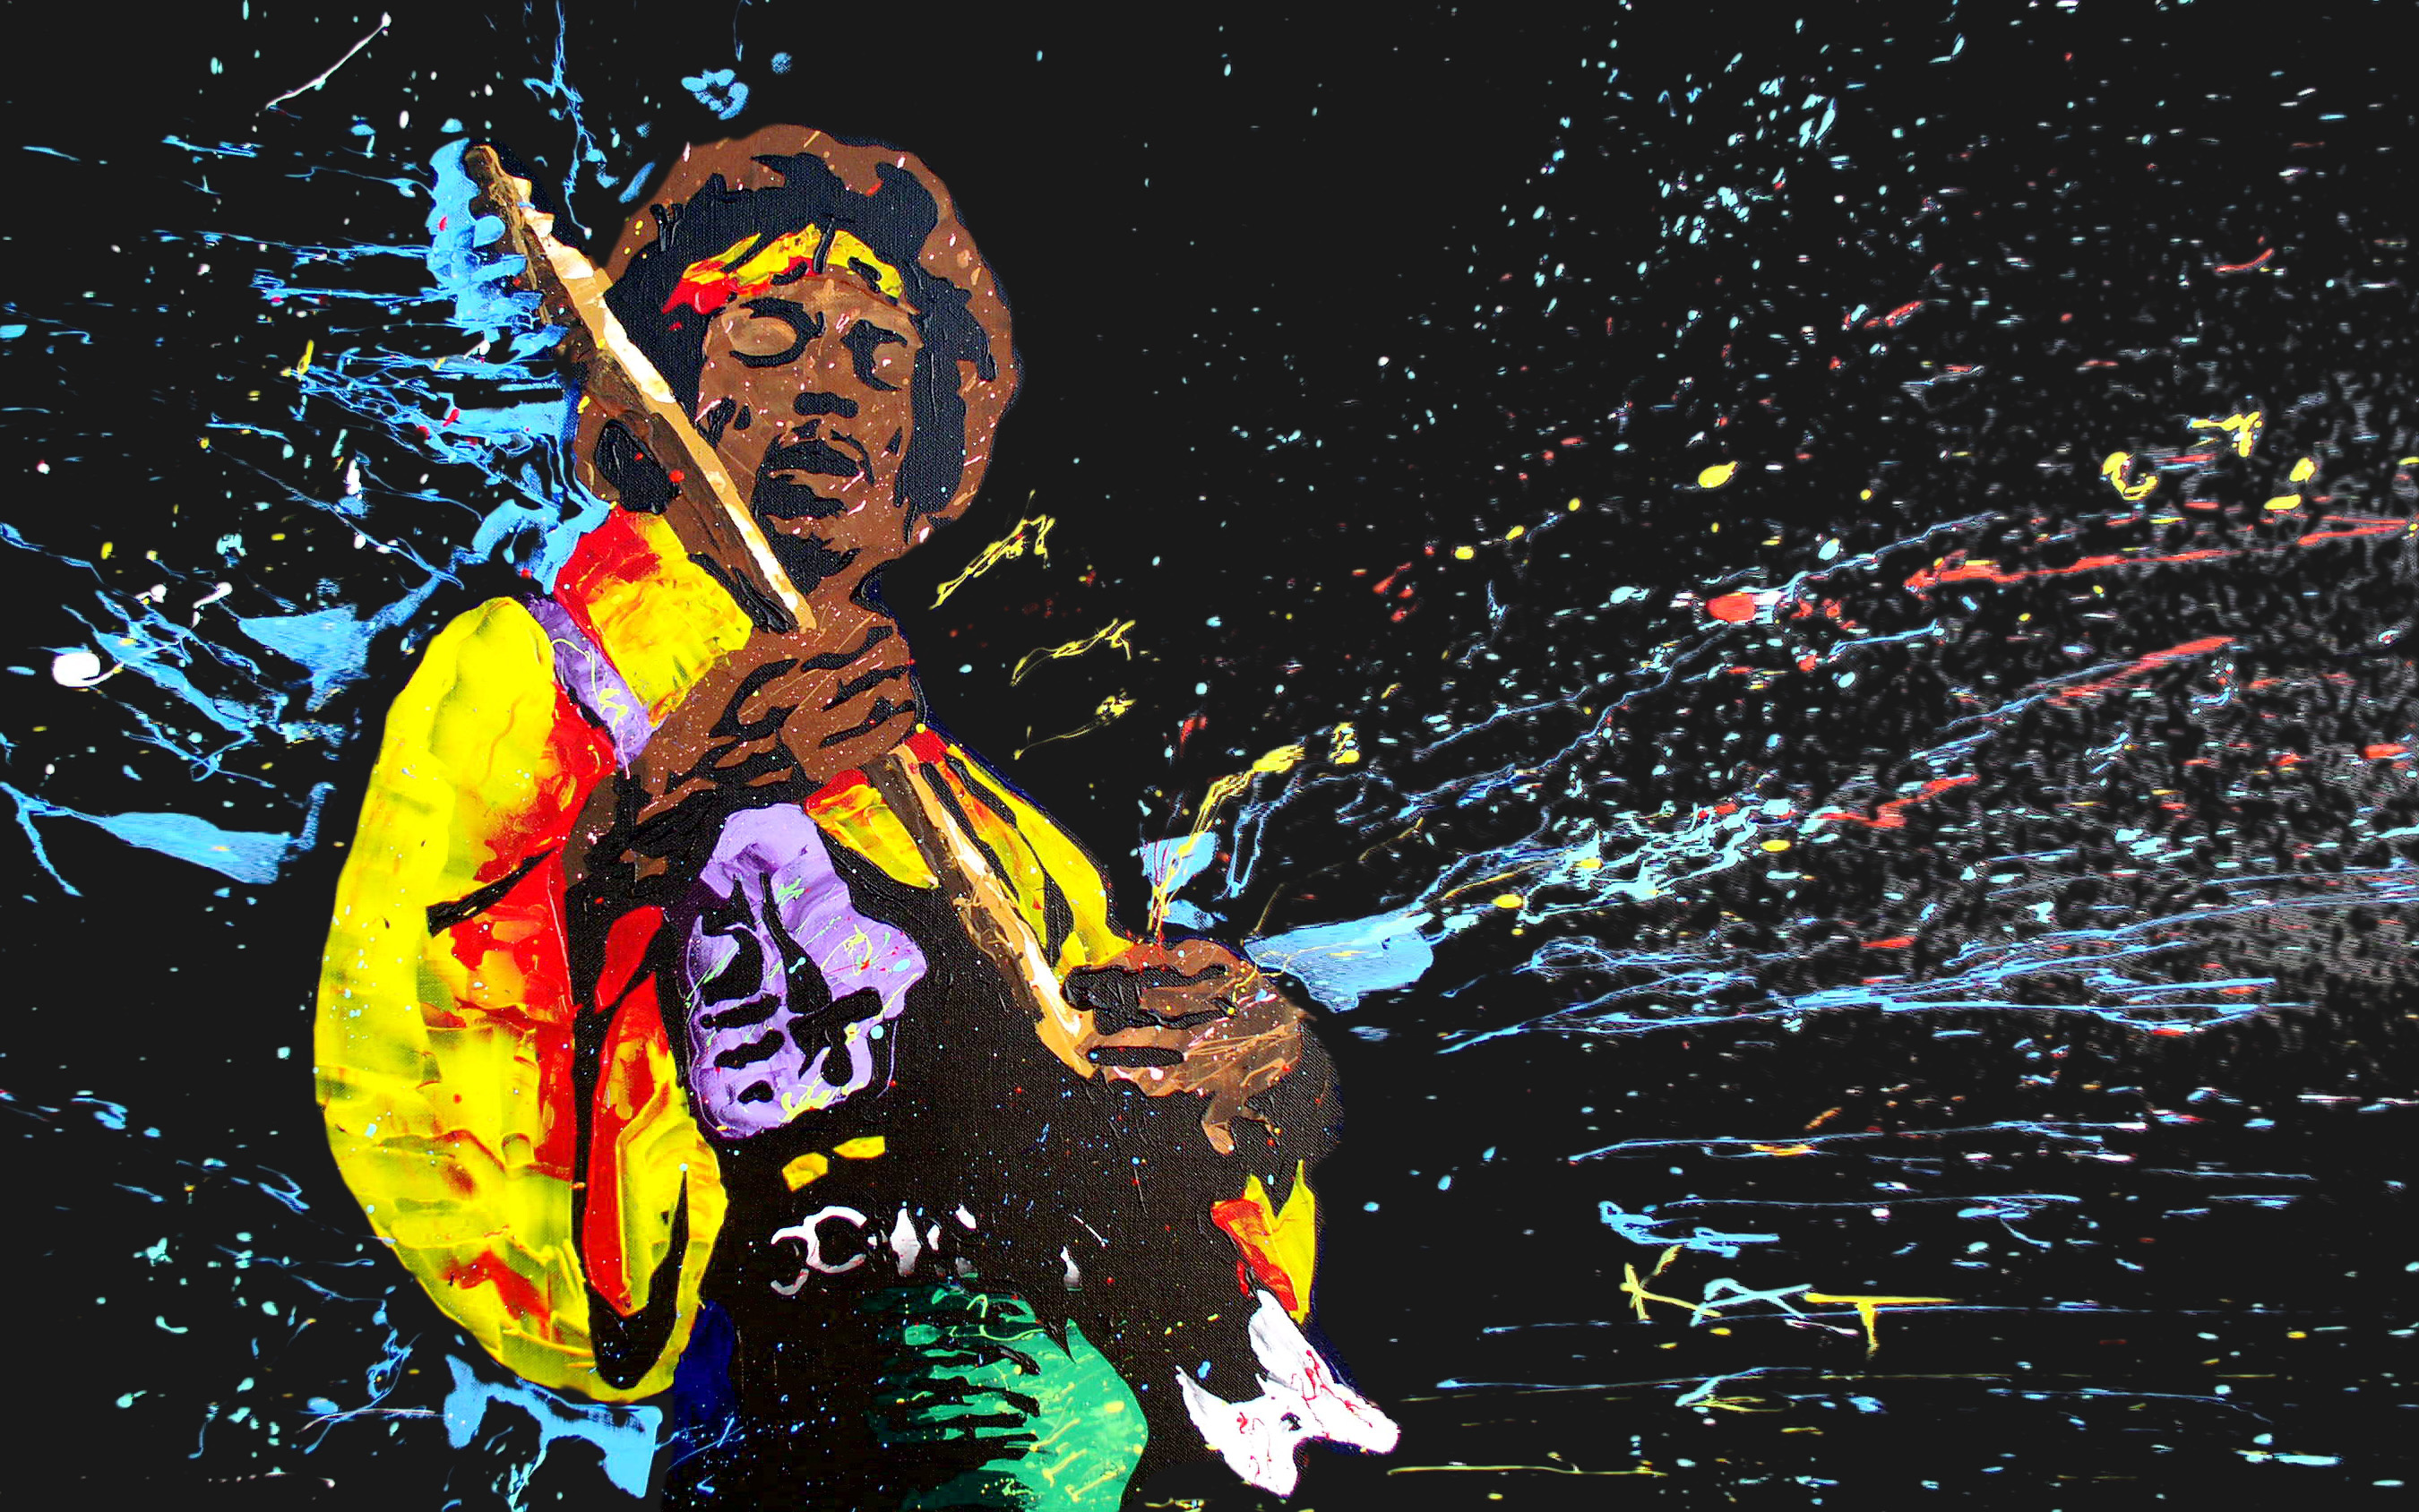 Pop Art Wallpapers 60 Images: Jimi Hendrix Full HD Wallpaper And Background Image